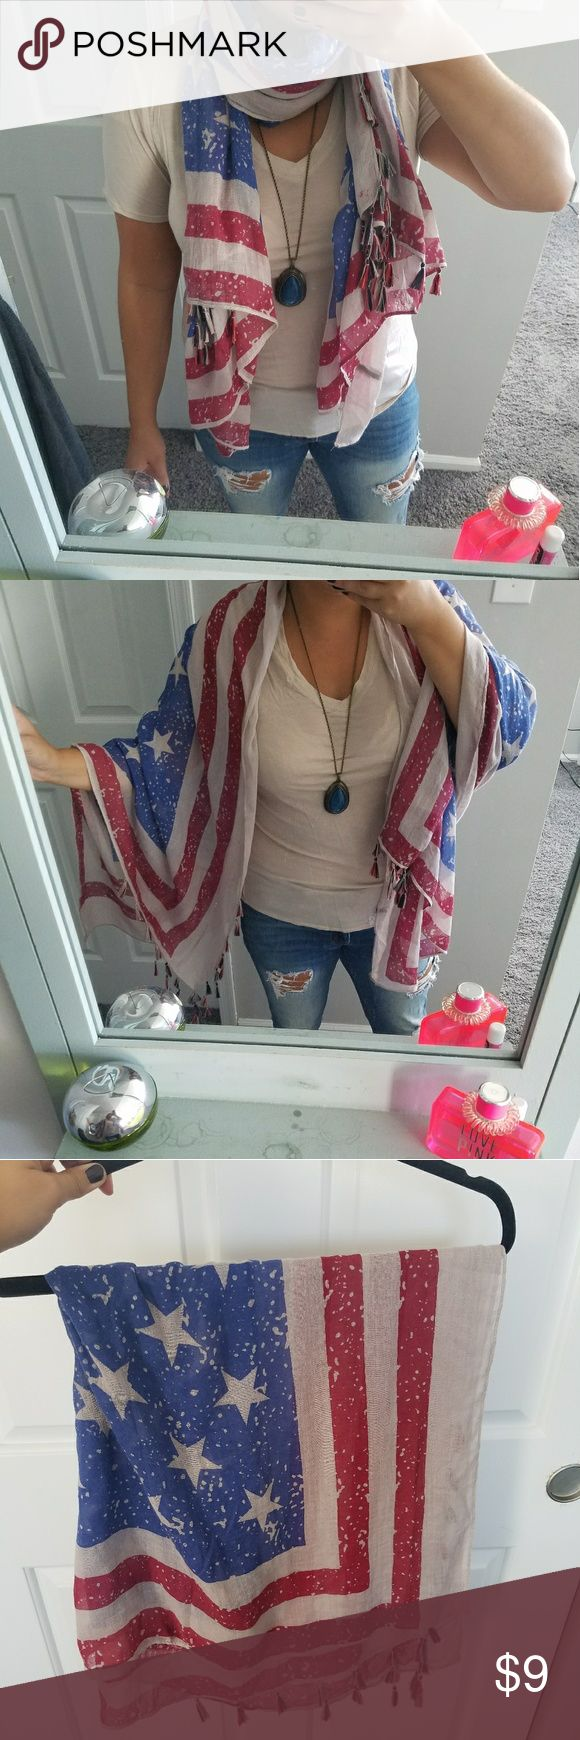 American flag scarf with tassles Adorable American flag patterned scarf/shawl with tassles on the end. Can be worn in various ways!! Accessories Scarves & Wraps